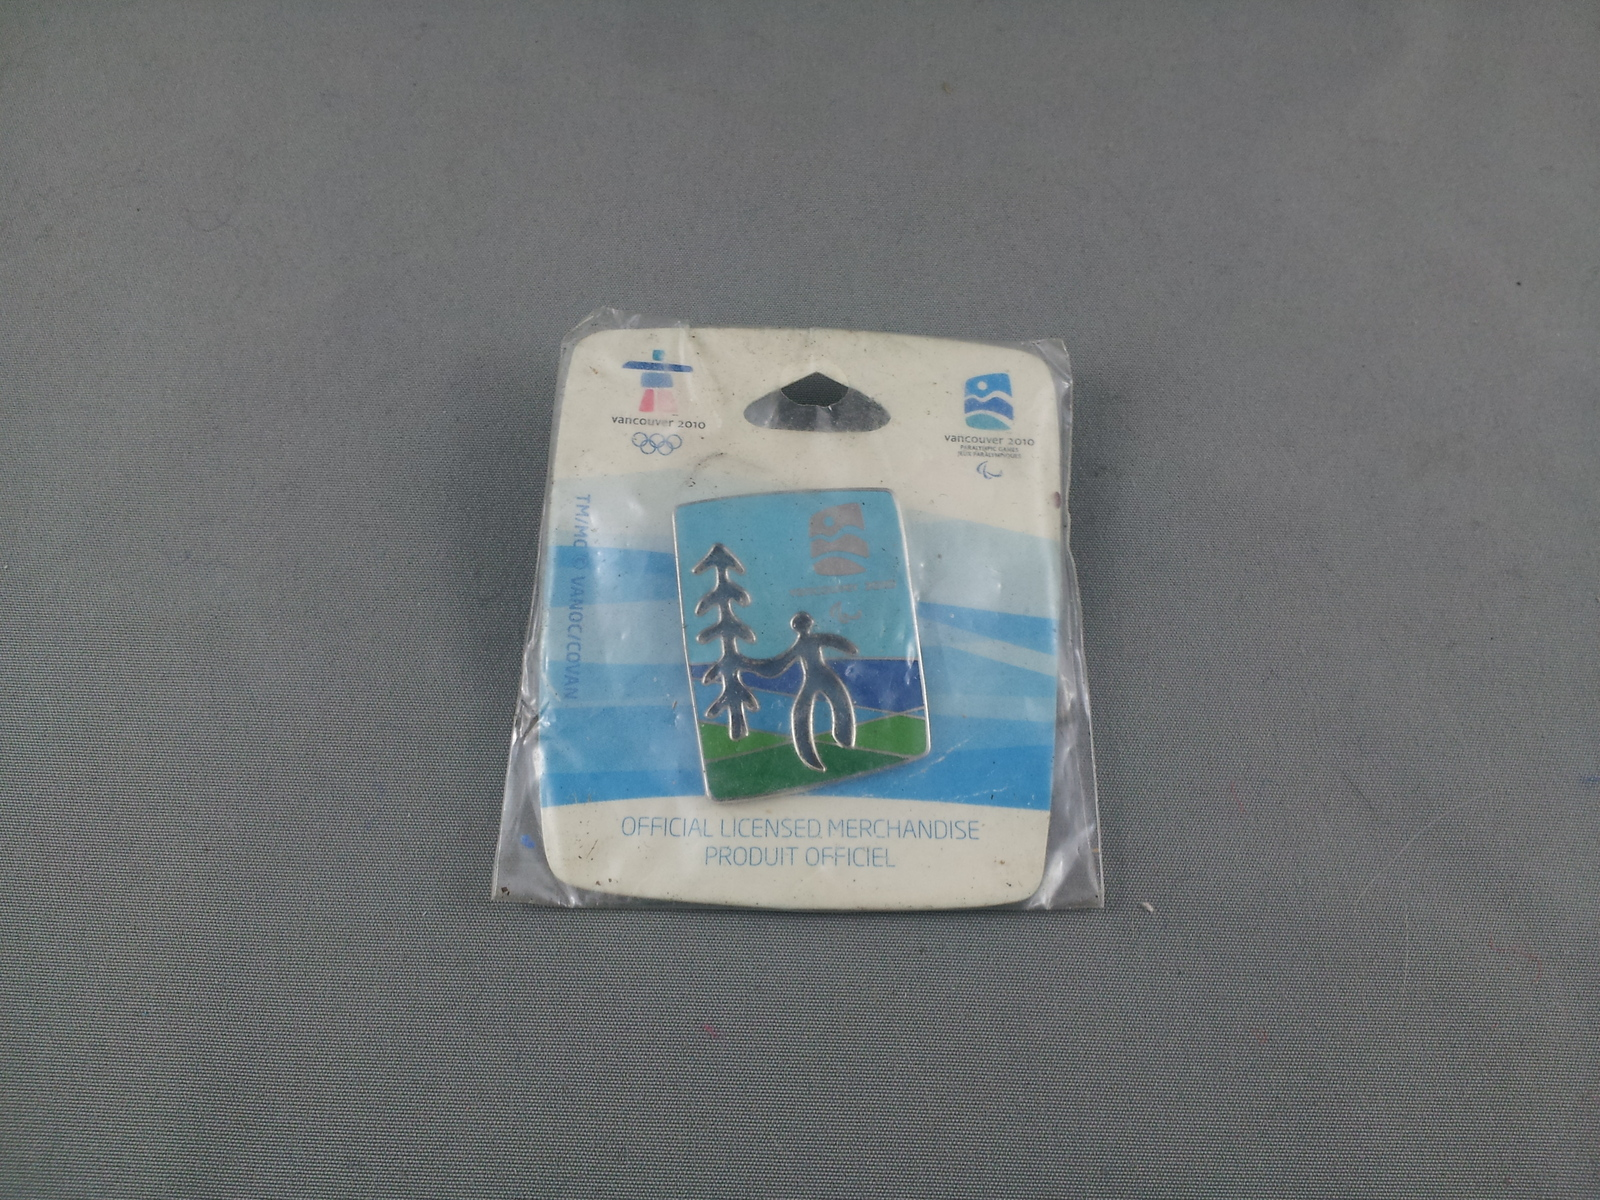 Primary image for 2010 Winter Paralympic Games Pin - Man and Tree - New in Original Packaging